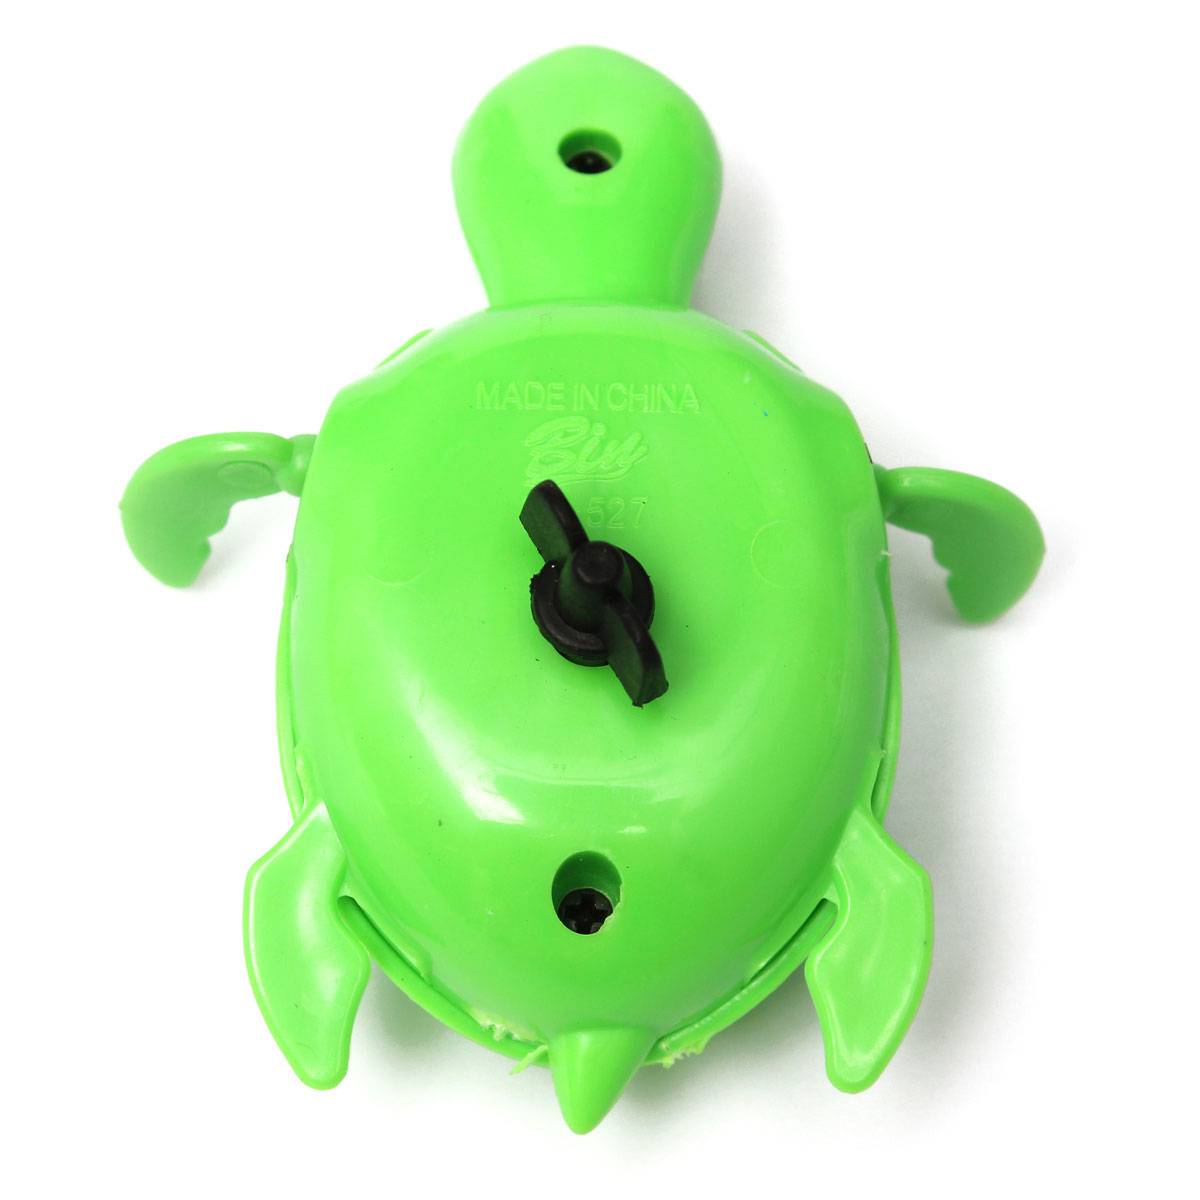 Floating Wind Up Swimming Turtle Summer Toy For Kids Children Pool Bath Fun Time Lazada Singapore